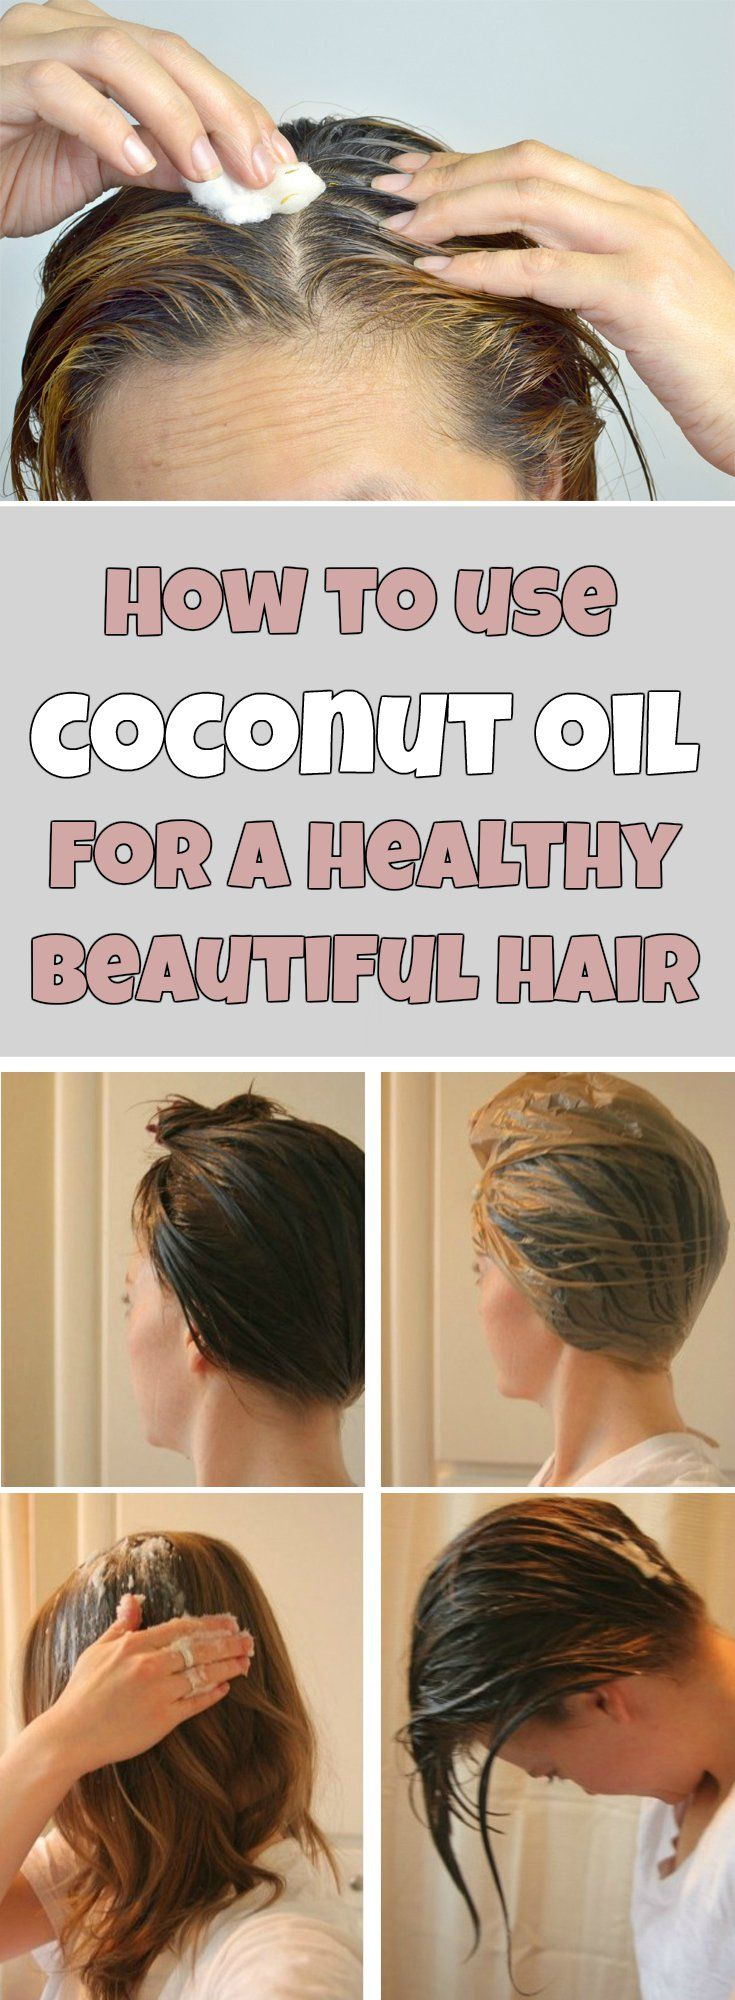 How to use coconut oil for a healthy beautiful hair - BeautyTipsZone.com